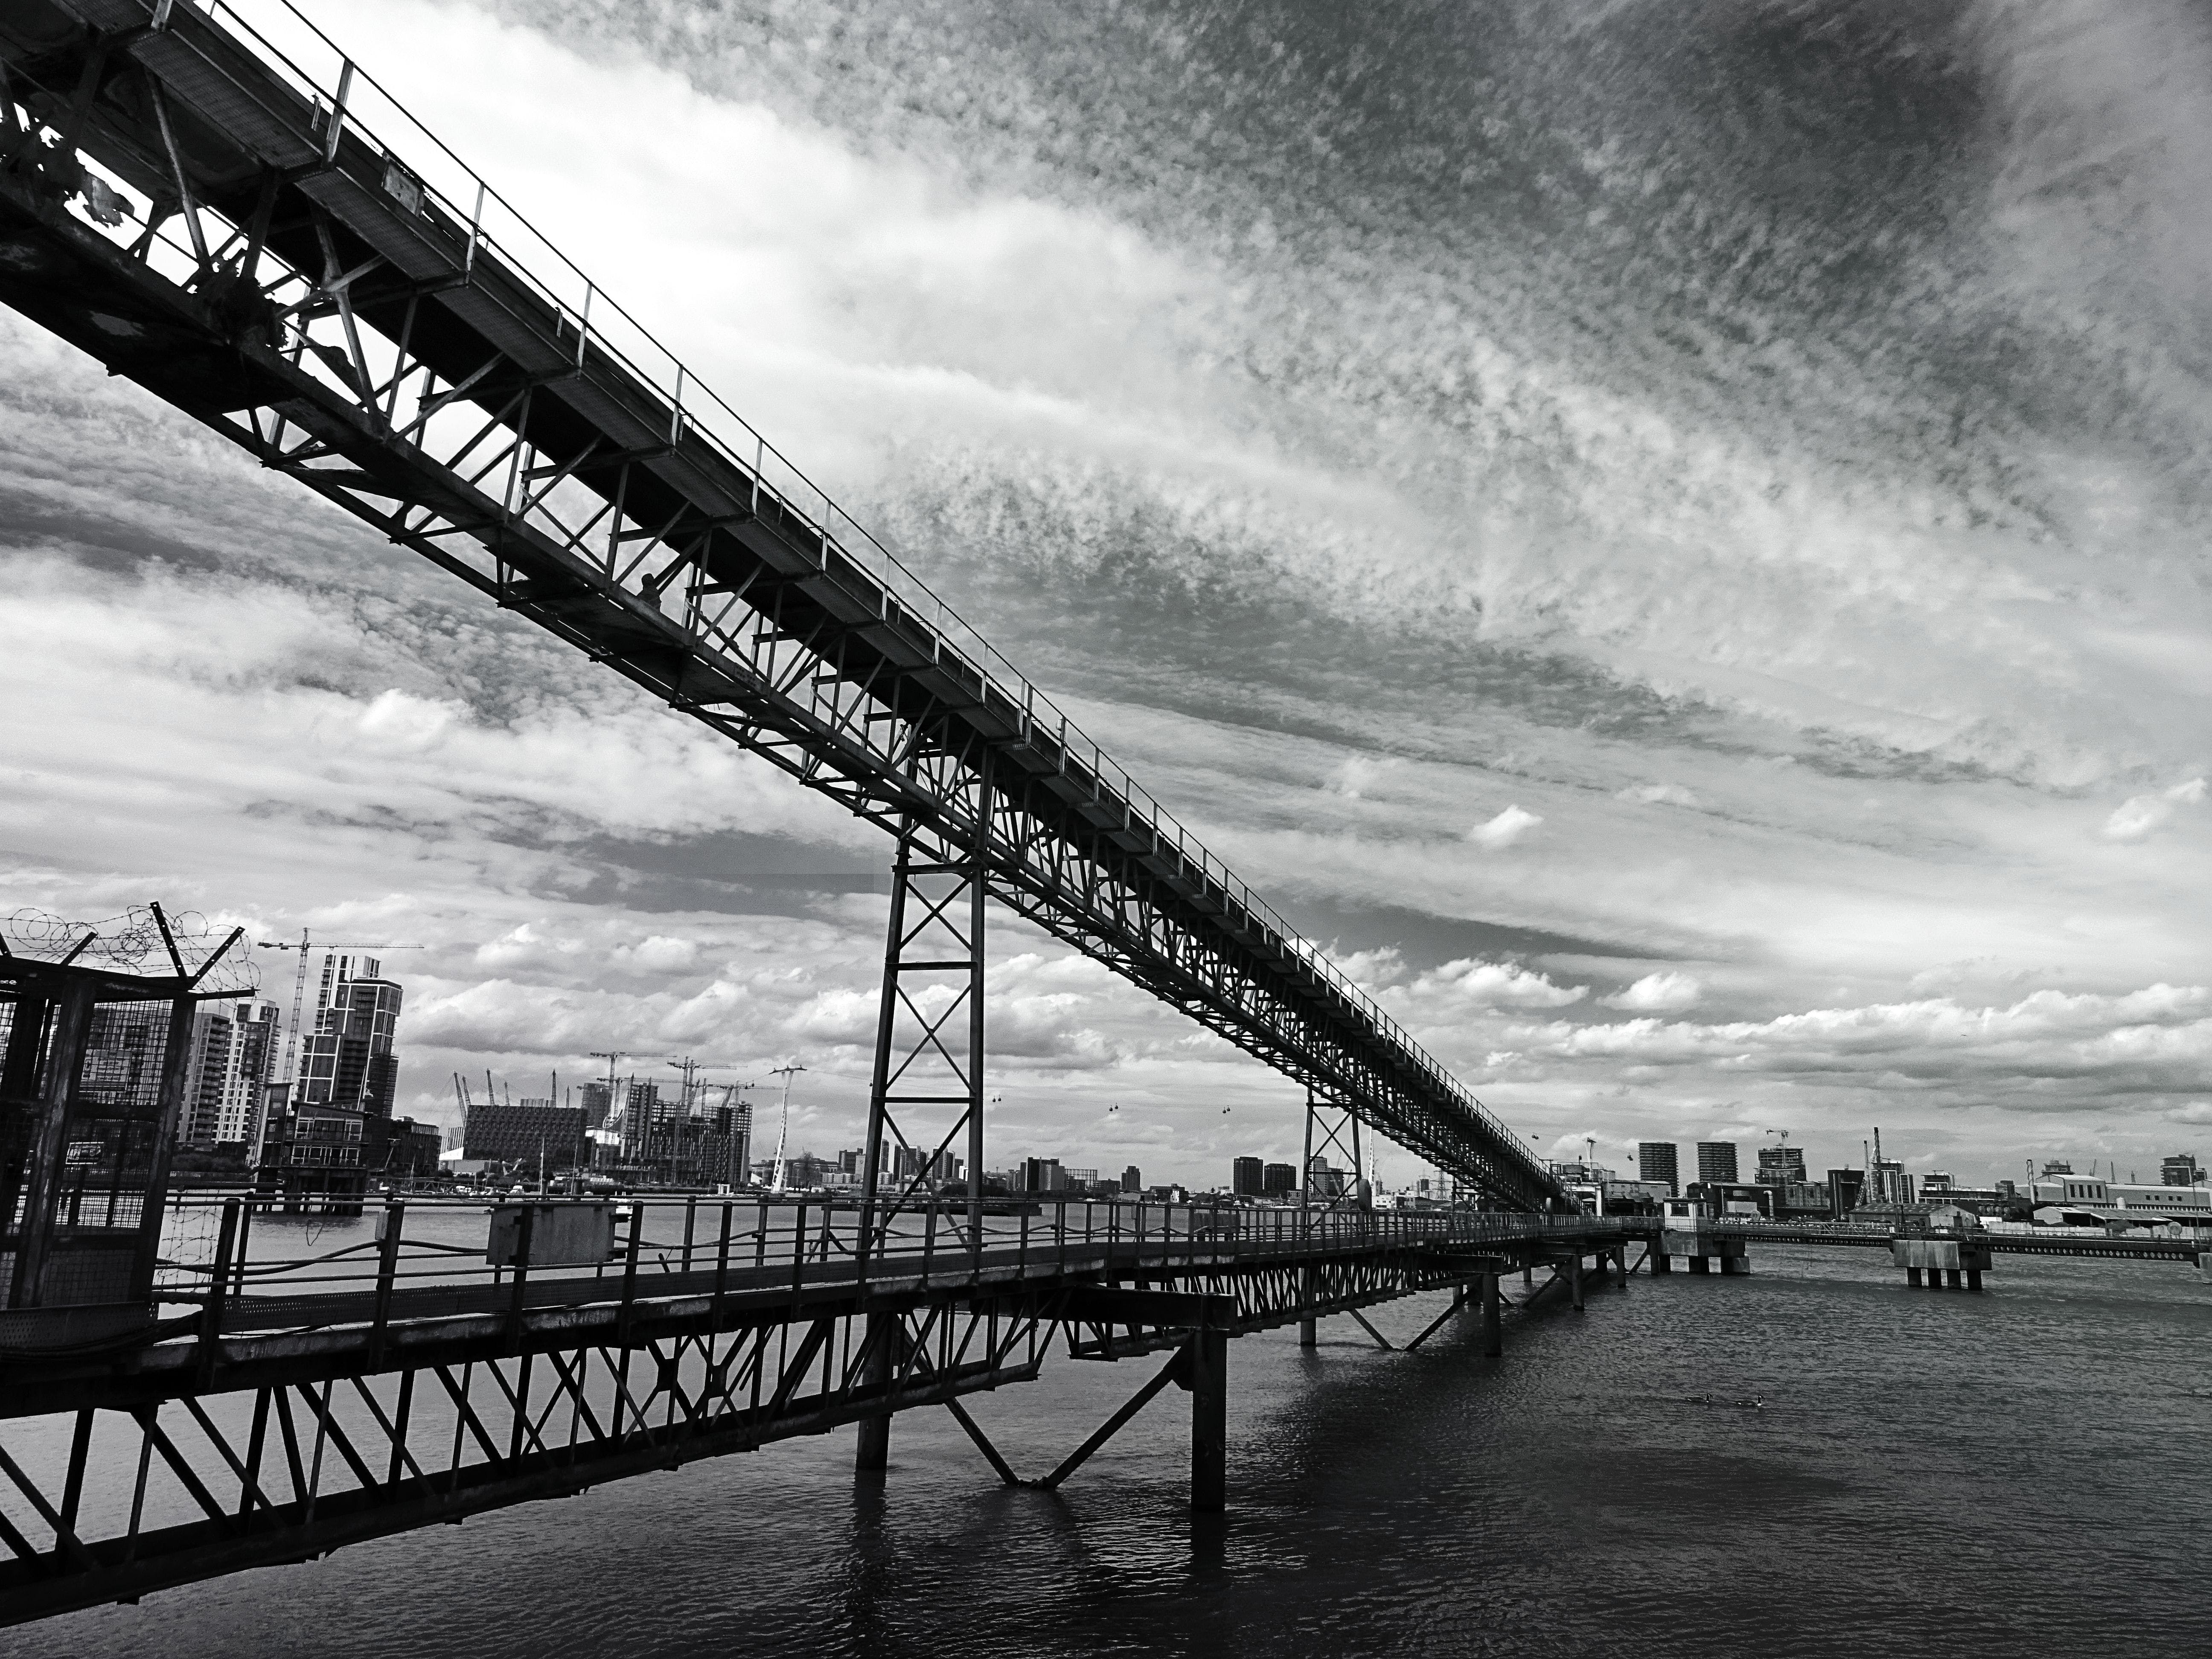 Grayscale Photo of Bridge Surrounded by Body of Water